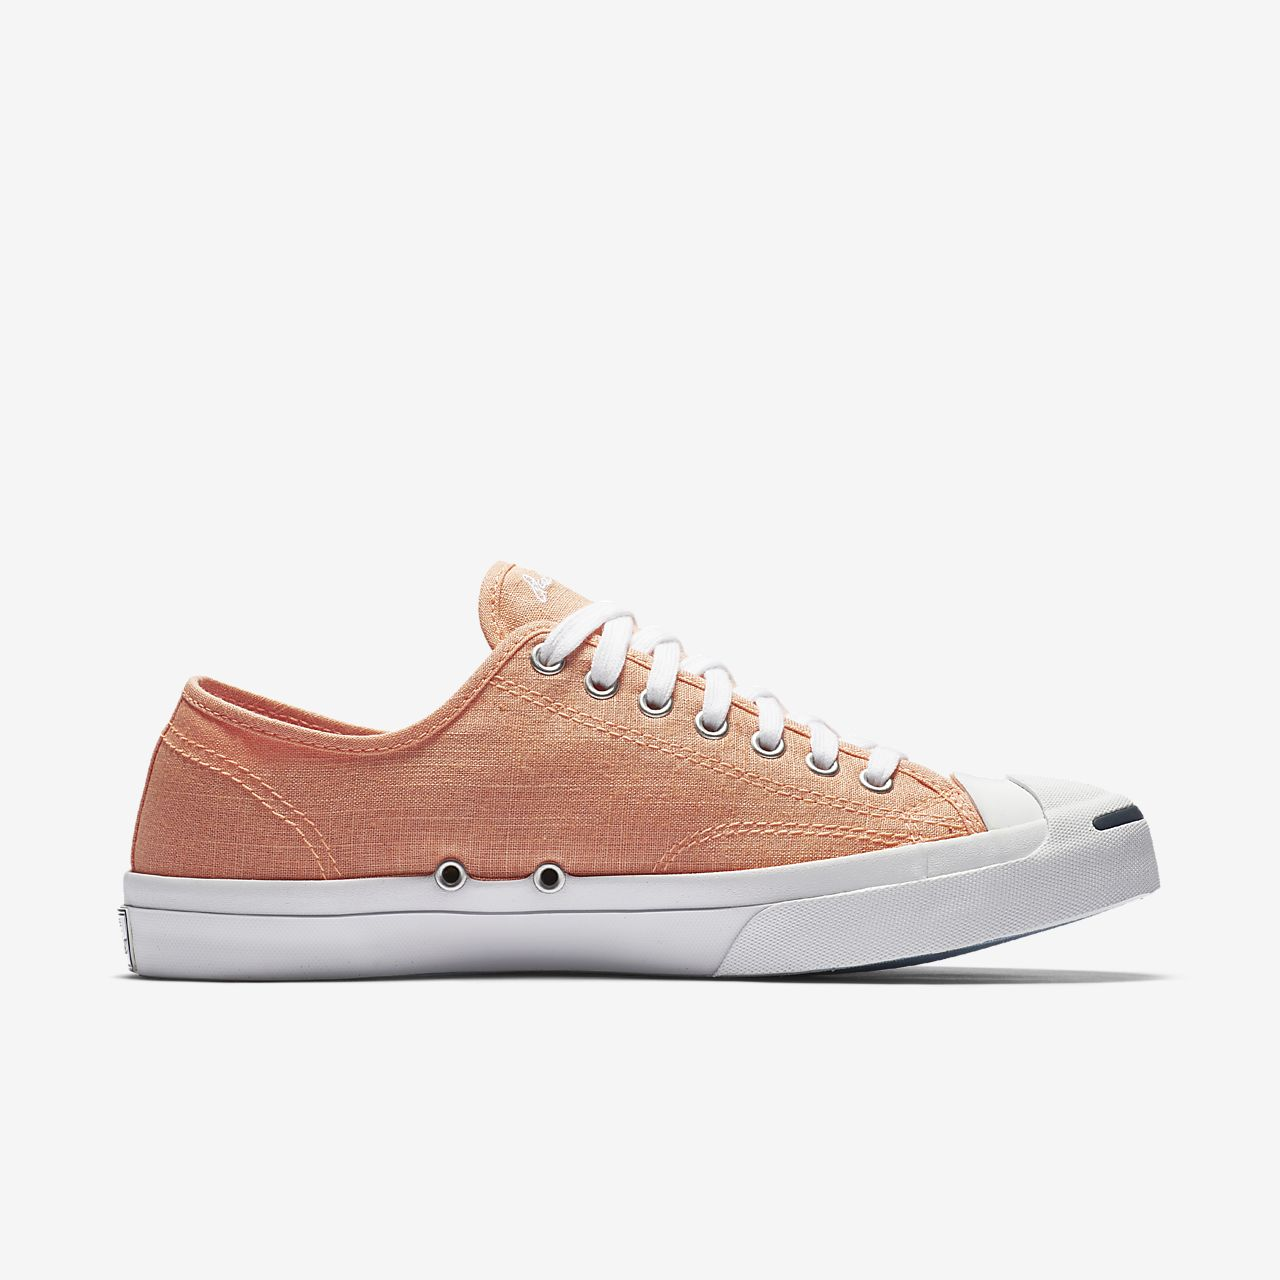 ... Converse Jack Purcell Open Textile Low Top Unisex Shoe